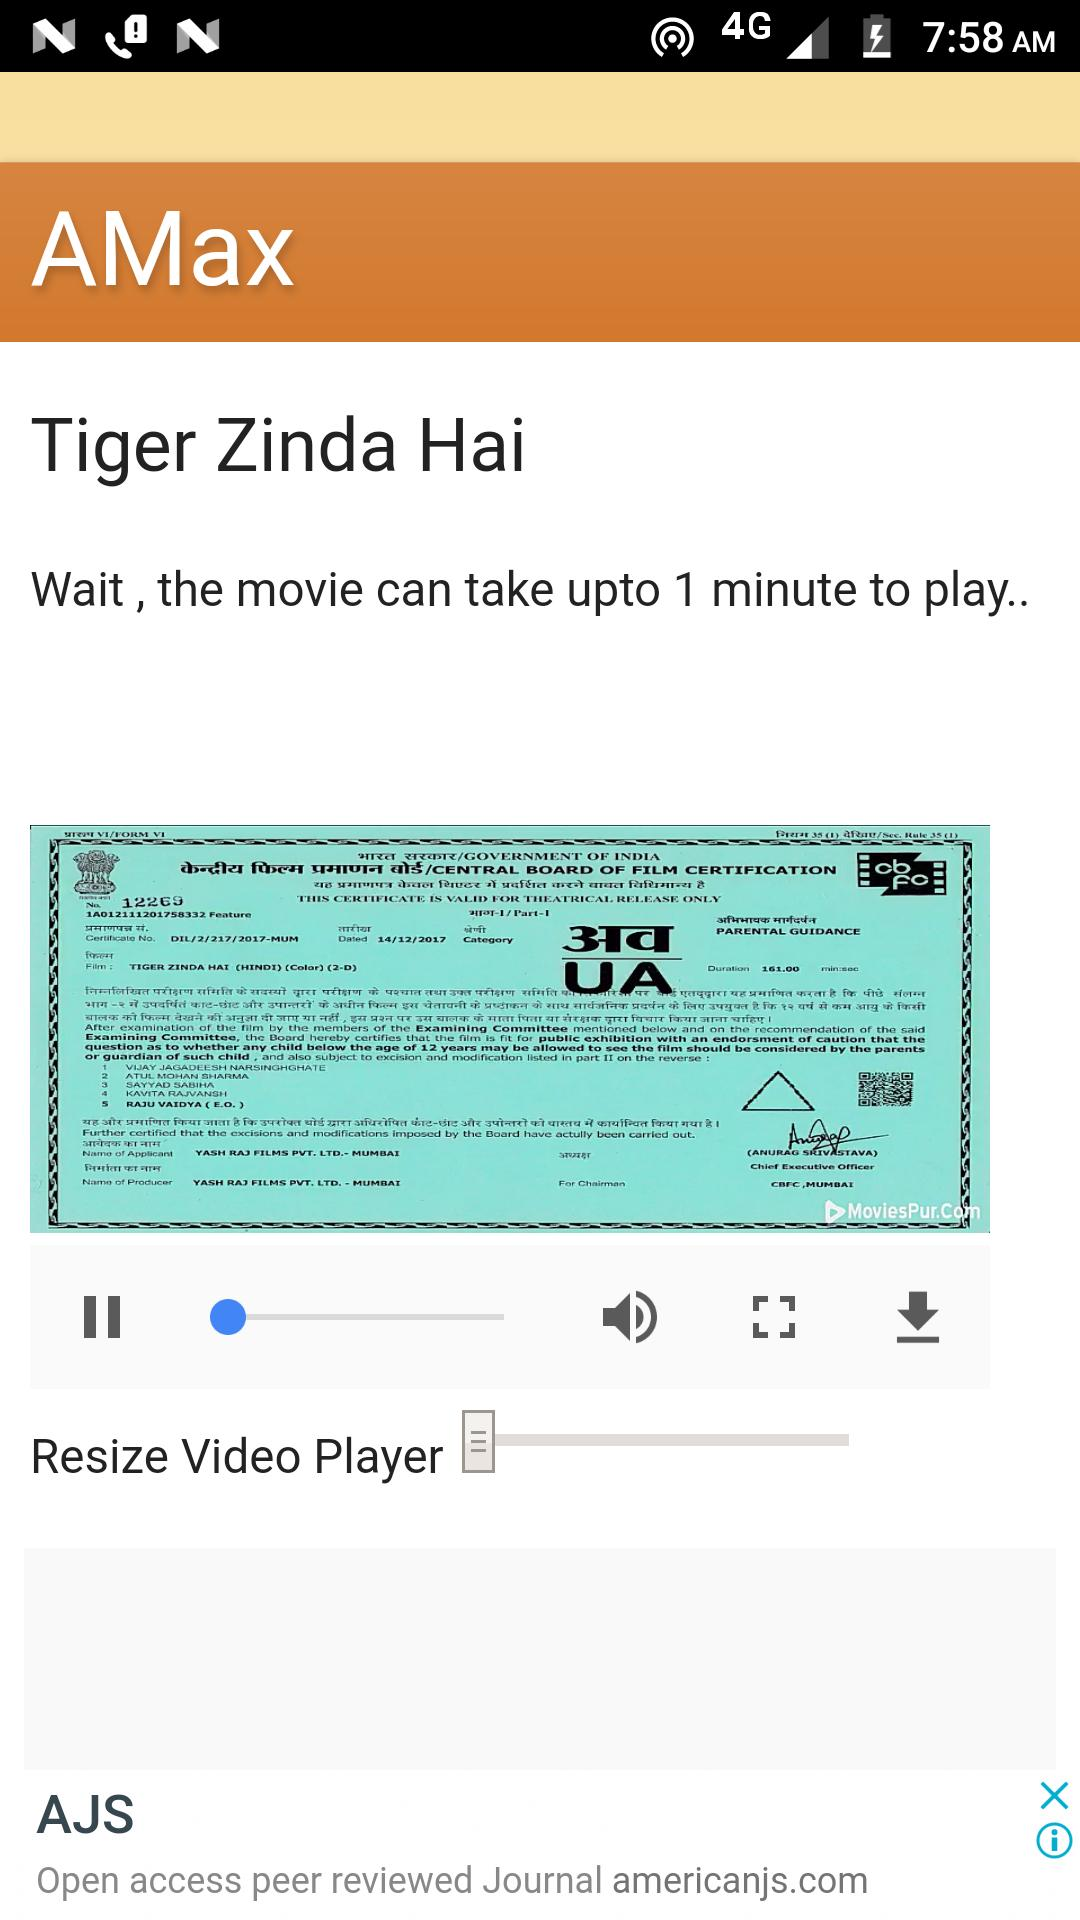 Tiger Zinda Hai Full Movie In Hd Salman Khan For Android Apk